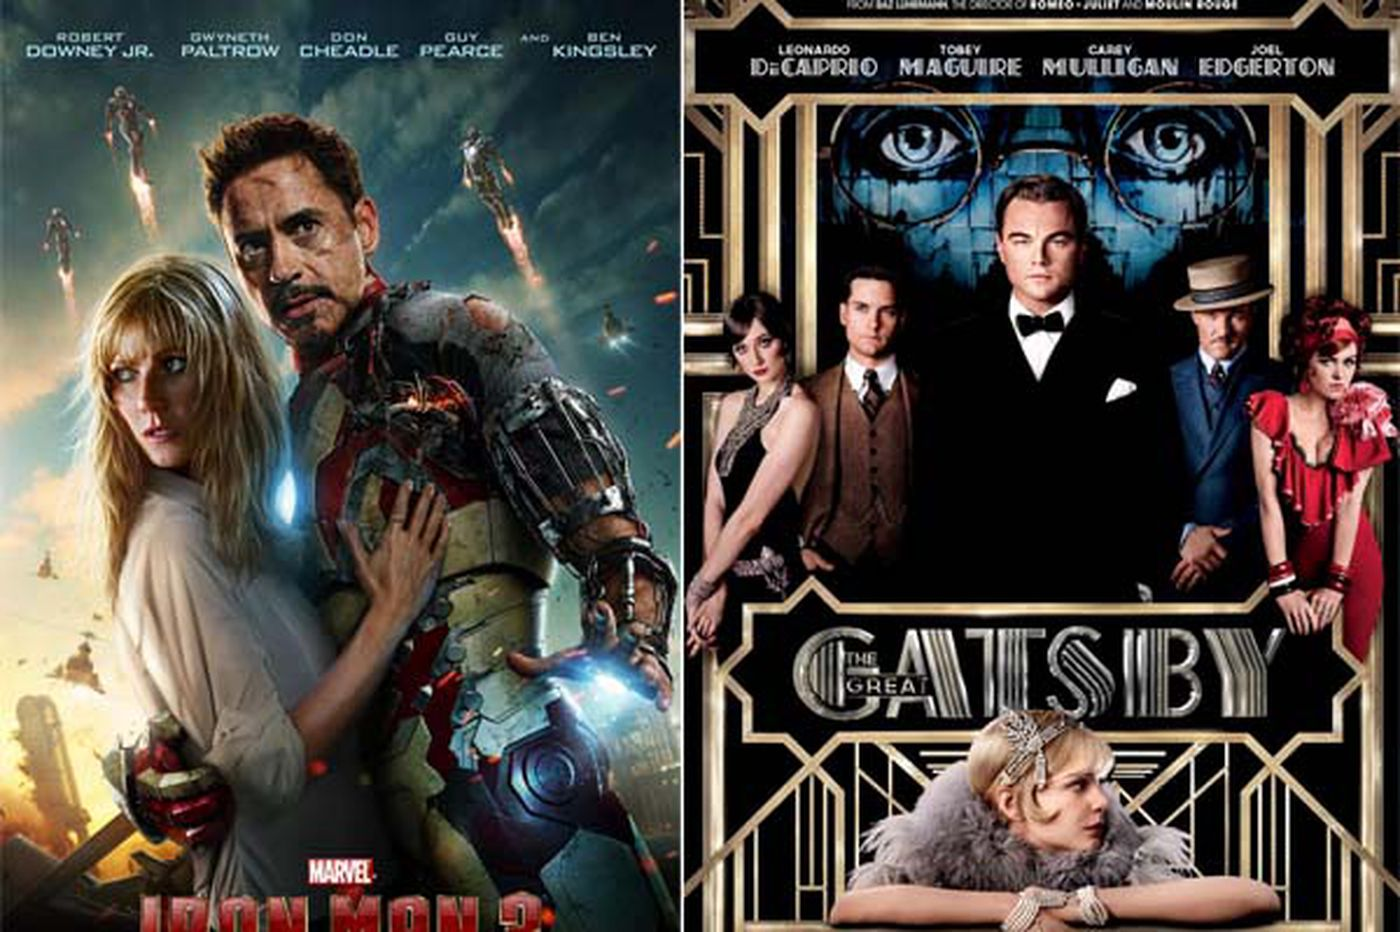 Sideshow: 'Iron Man 3' tops Gatsby's arrival